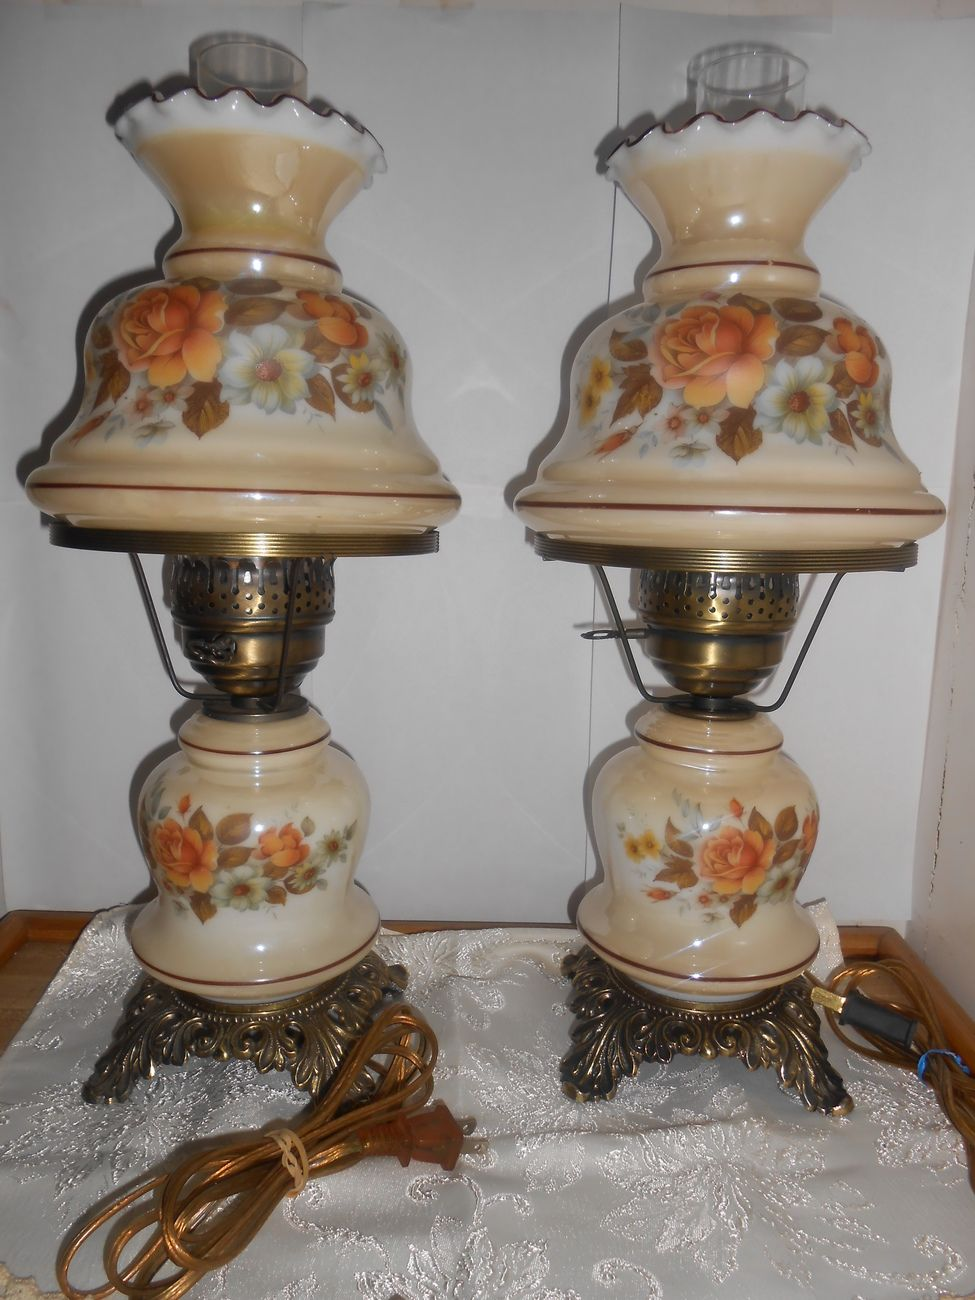 Vintage Hurricane Lamps Vintage Hurricane Lamps Hurricane Lamps Hurricane Oil Lamps